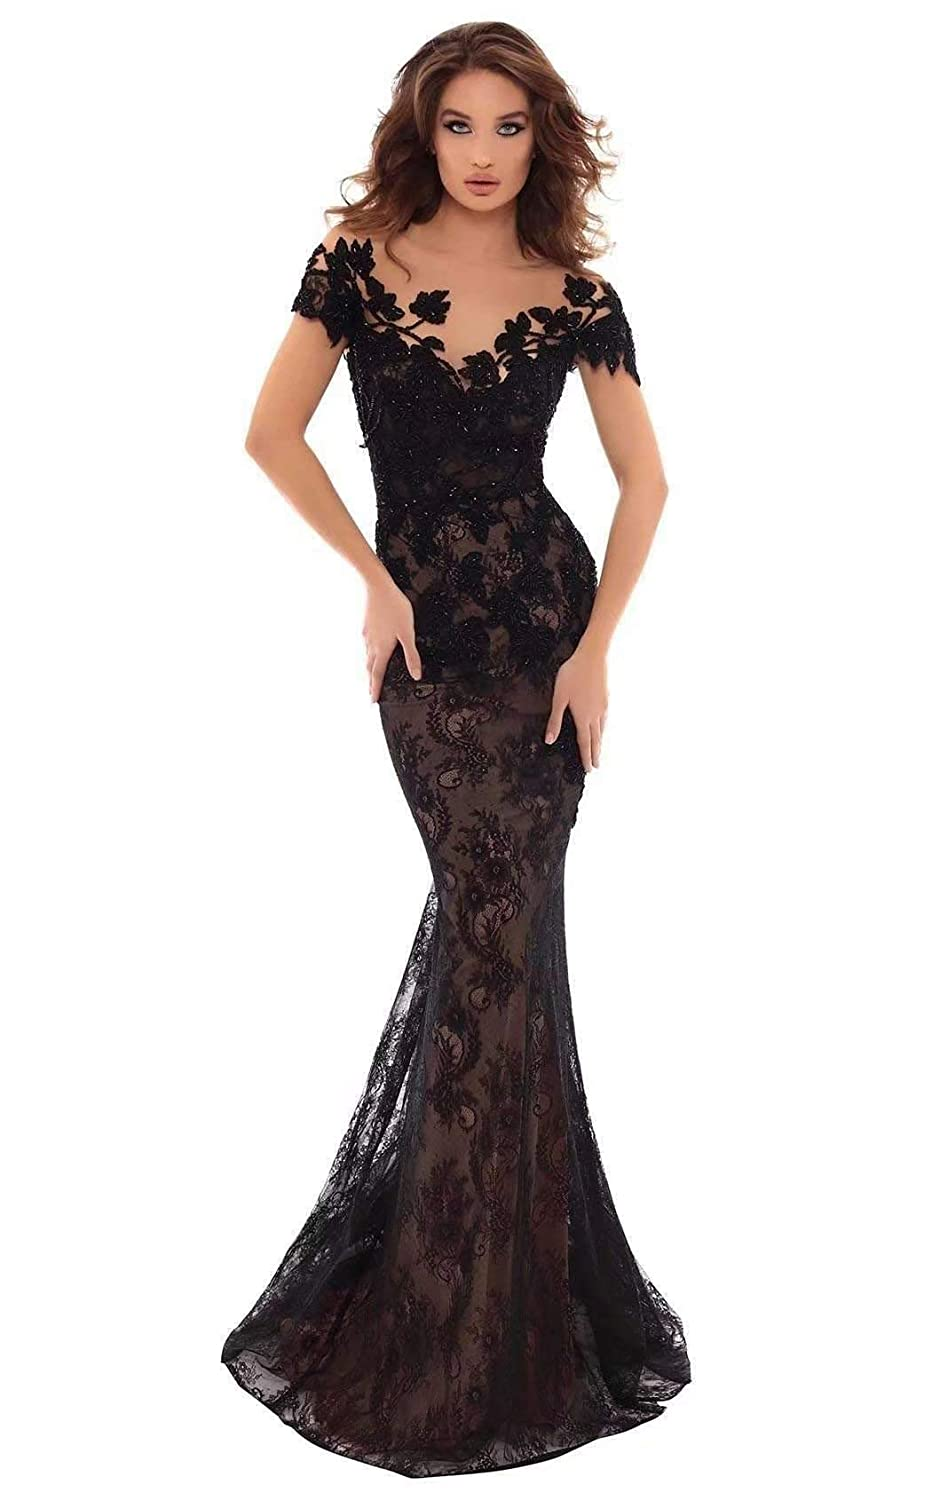 Unions Women Floral Appliques Mermaid Prom Dress Backless Long Wedding Celebrity Evening Gown